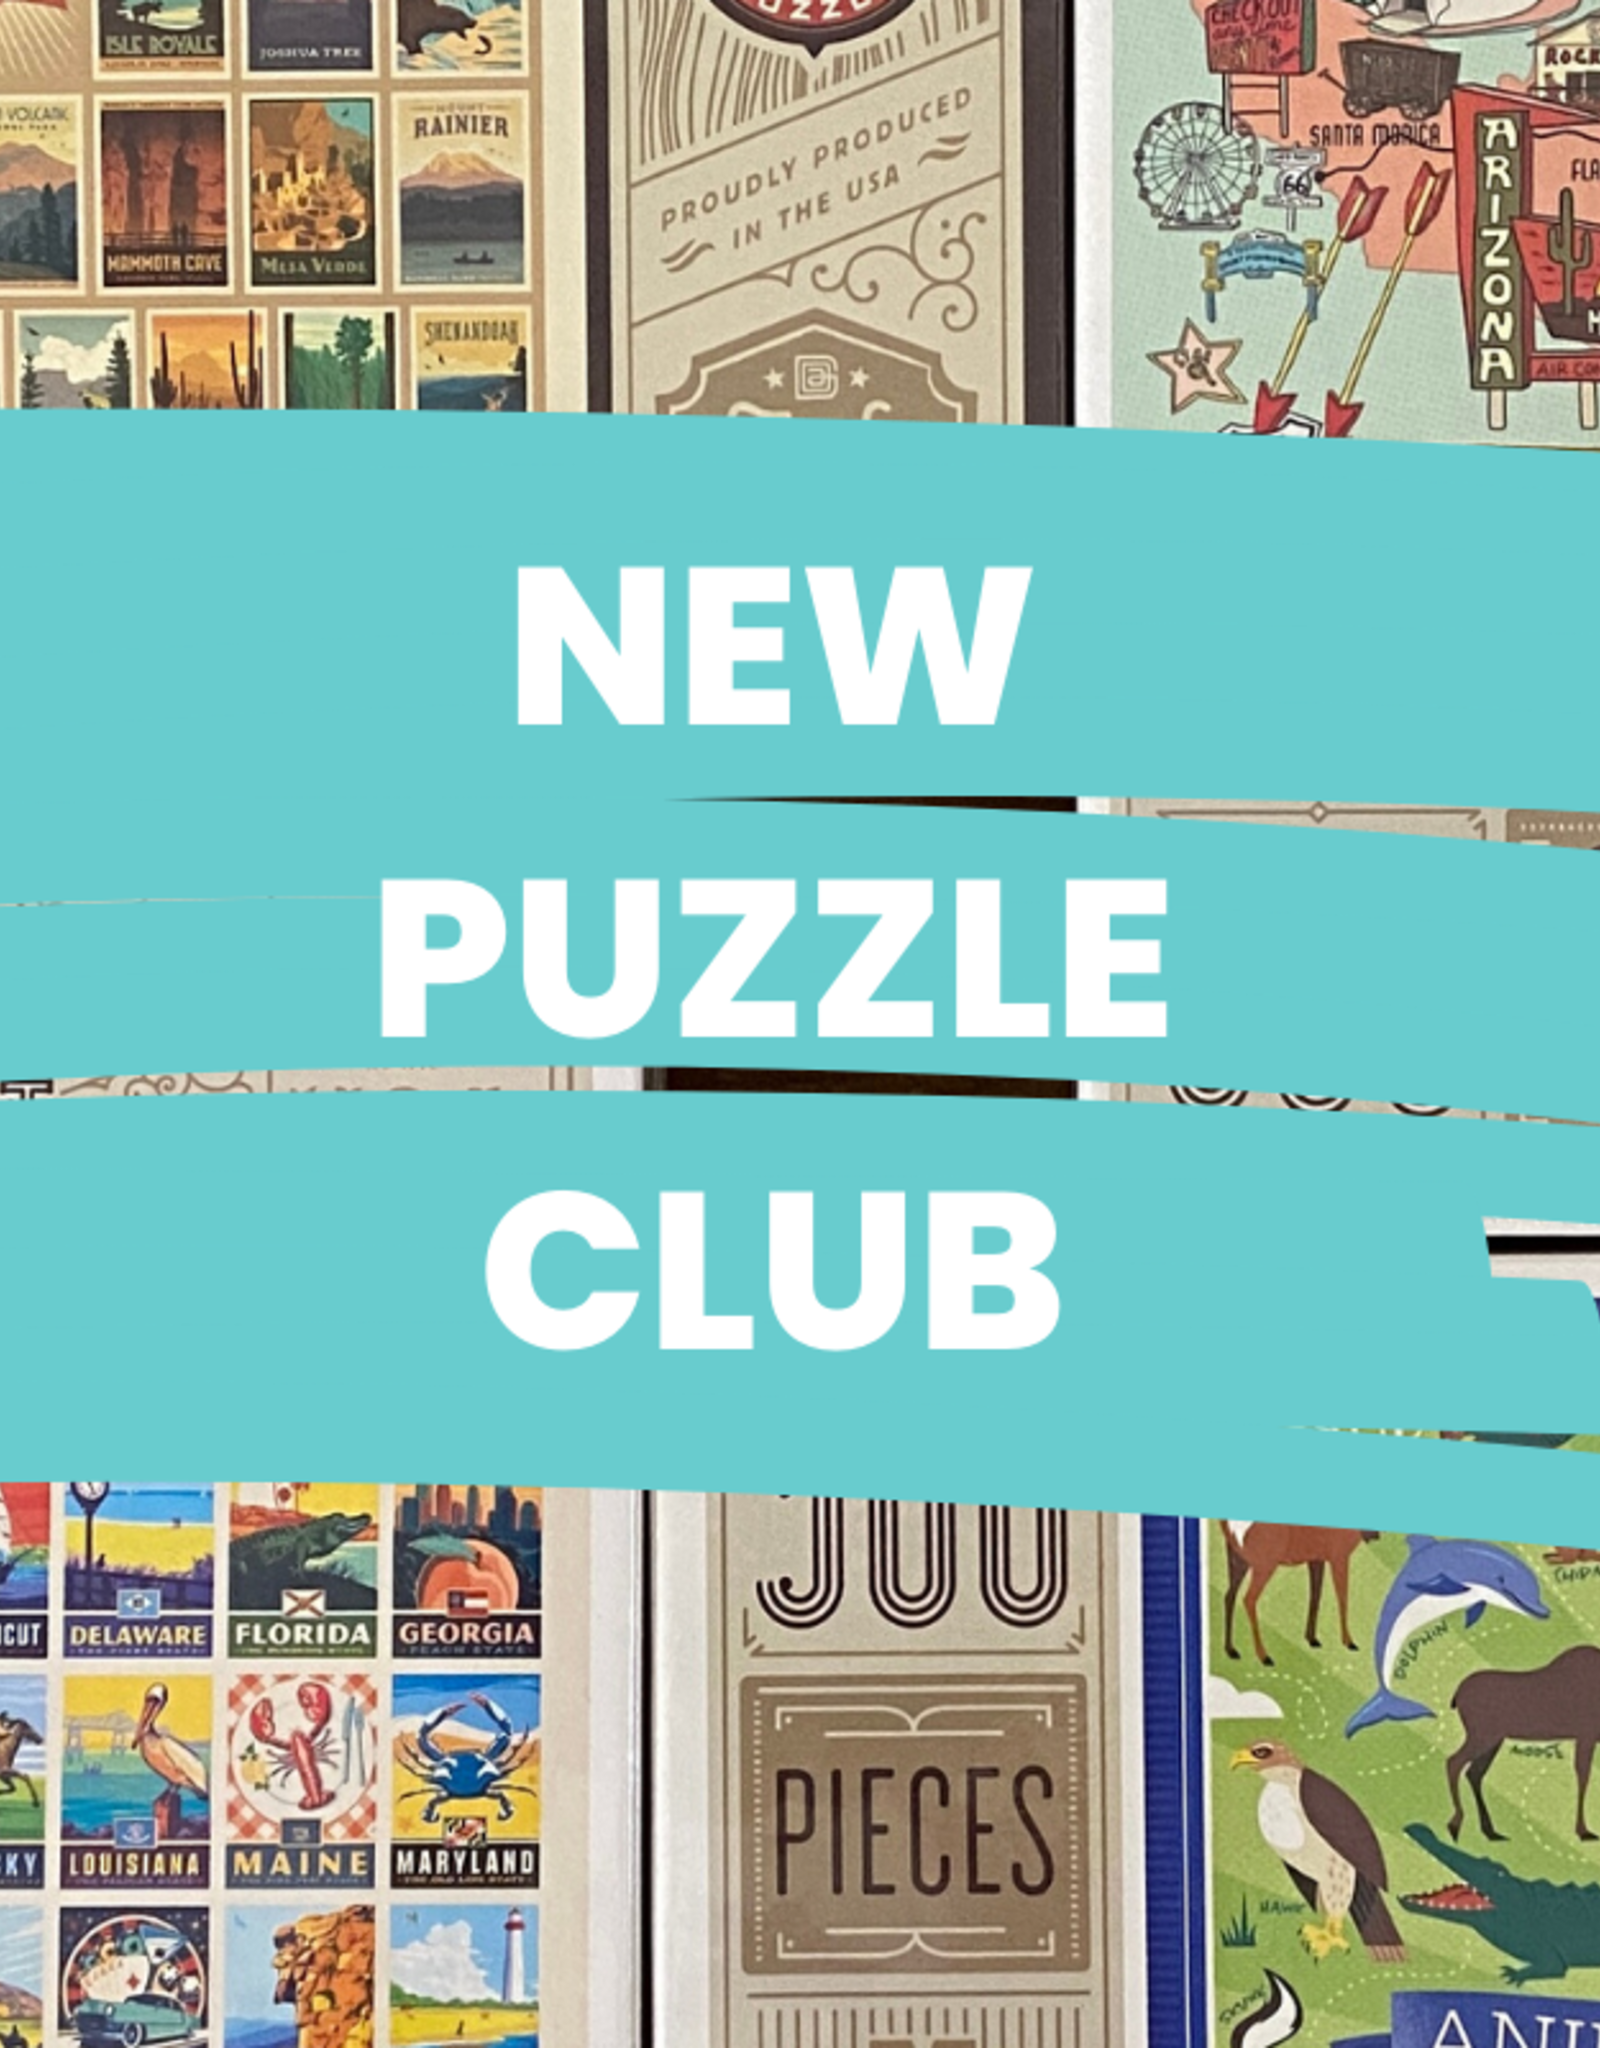 July Puzzle Club!  Sign up and receive a 500-pc puzzle a week for 4 weeks!